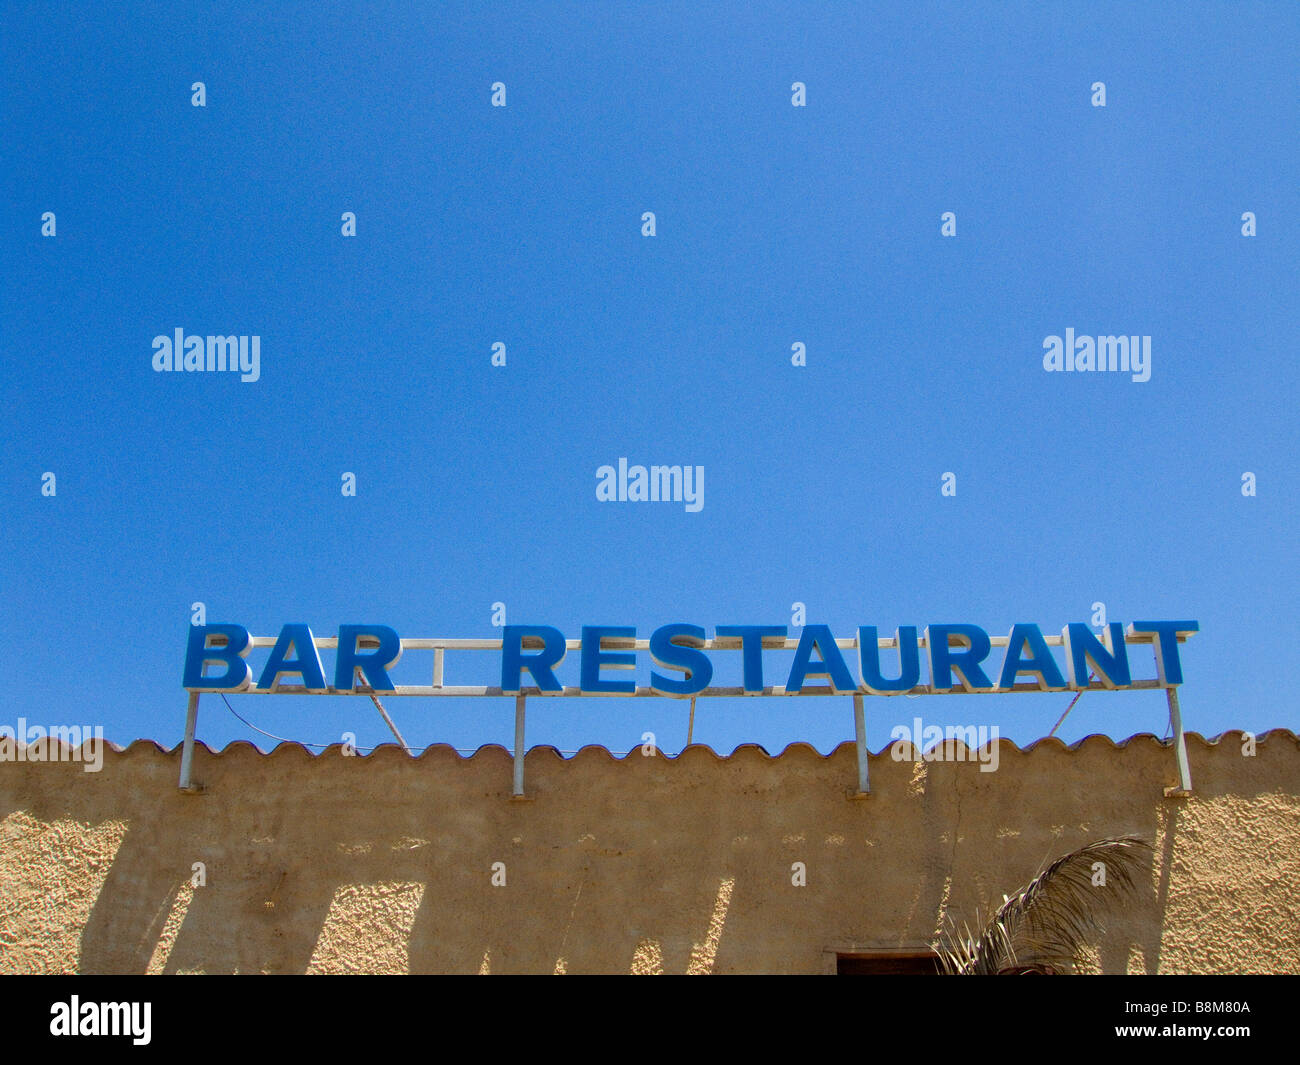 A Bar Restaurant sign against a blue sky - Stock Image